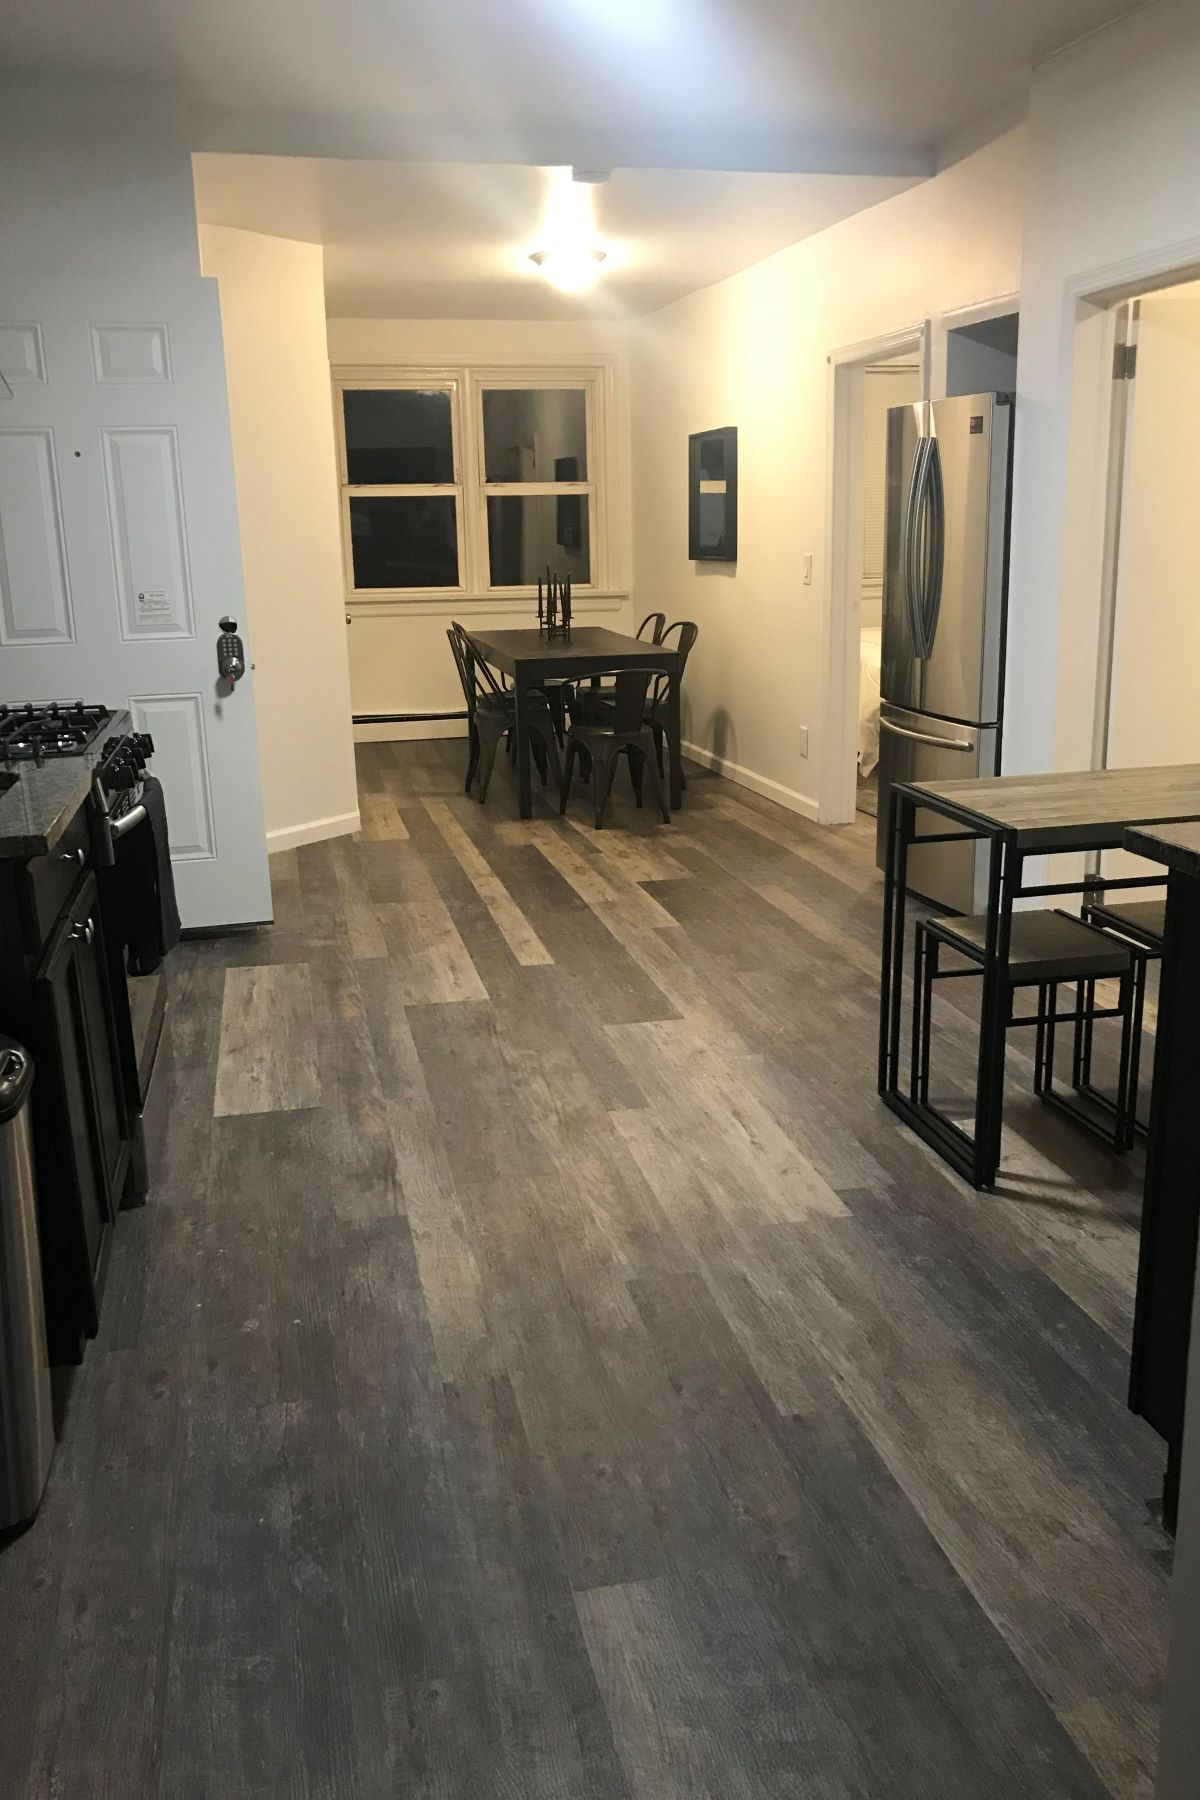 Property for Rent at BEAUTIFUL LARGE NEWLY RENOVATED 3 BEDROOMS 1 BATH 311 Lafayette St #1, Newark, New Jersey 07105 United States